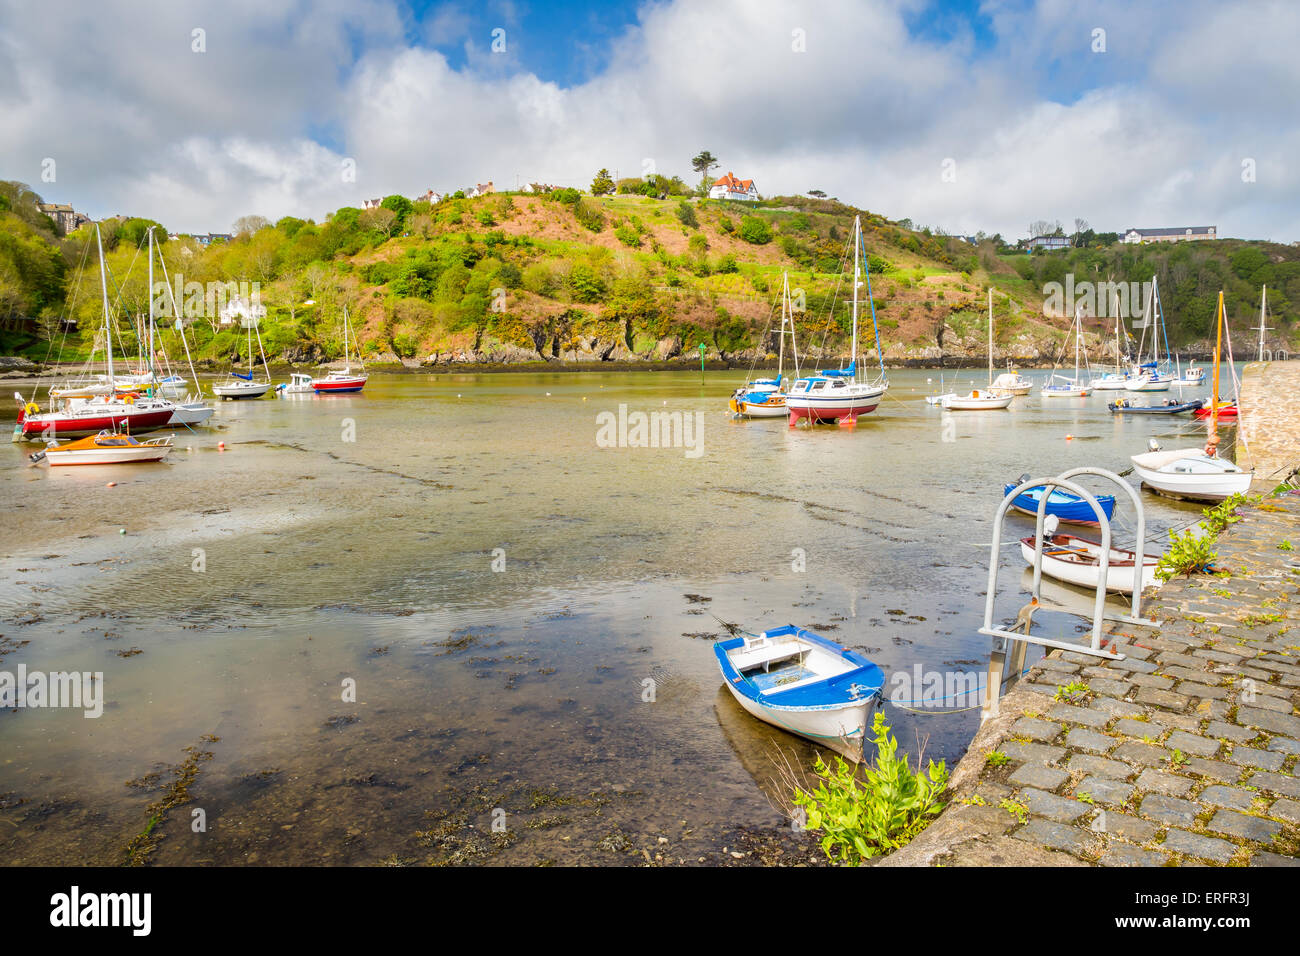 Fishguard a coastal town in Pembrokeshire, south west Wales UK Europe - Stock Image